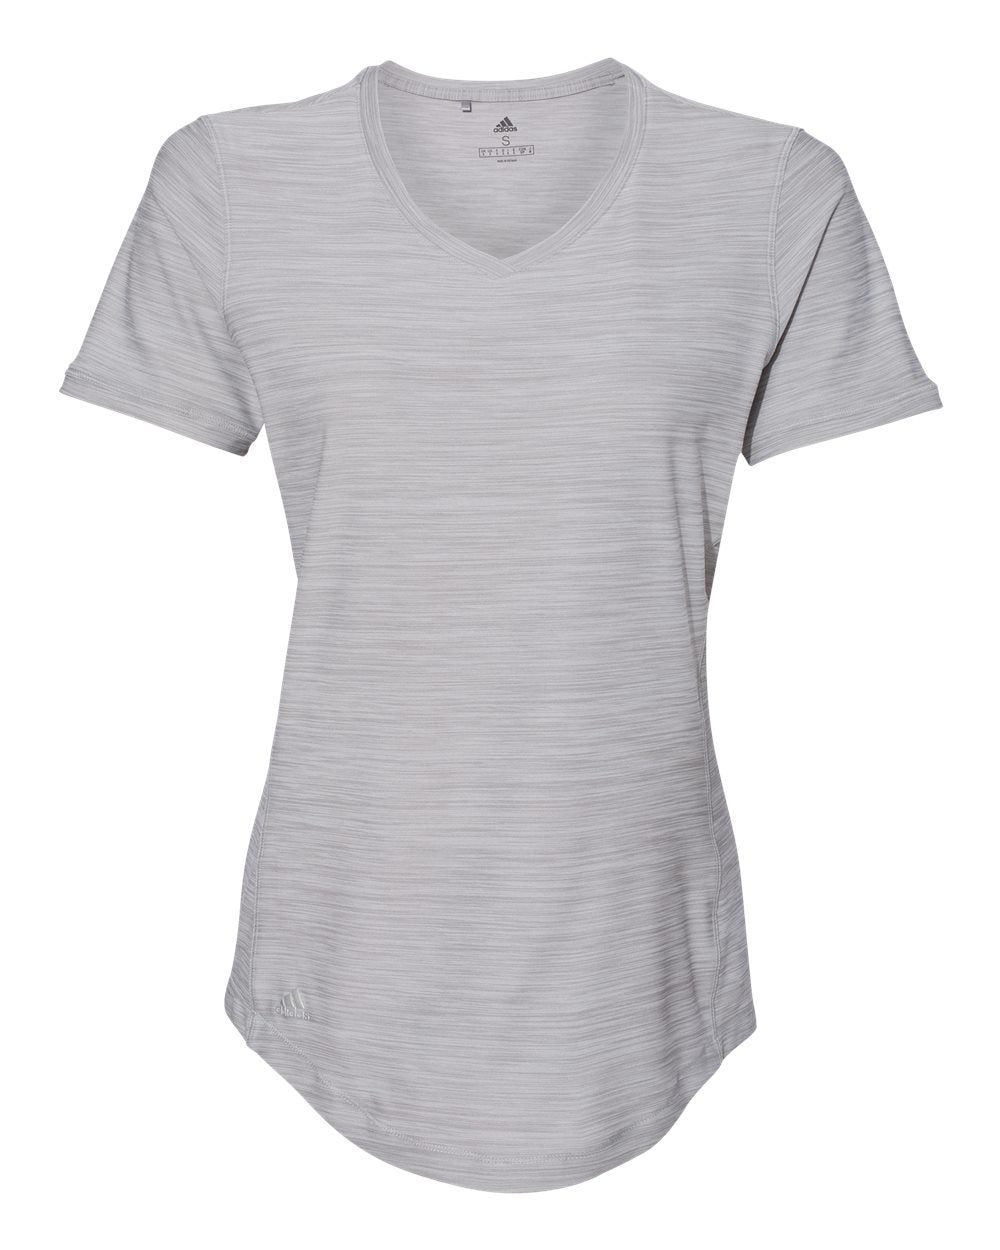 ADIDAS LADIES MELANGE TECH V-NECK TEE